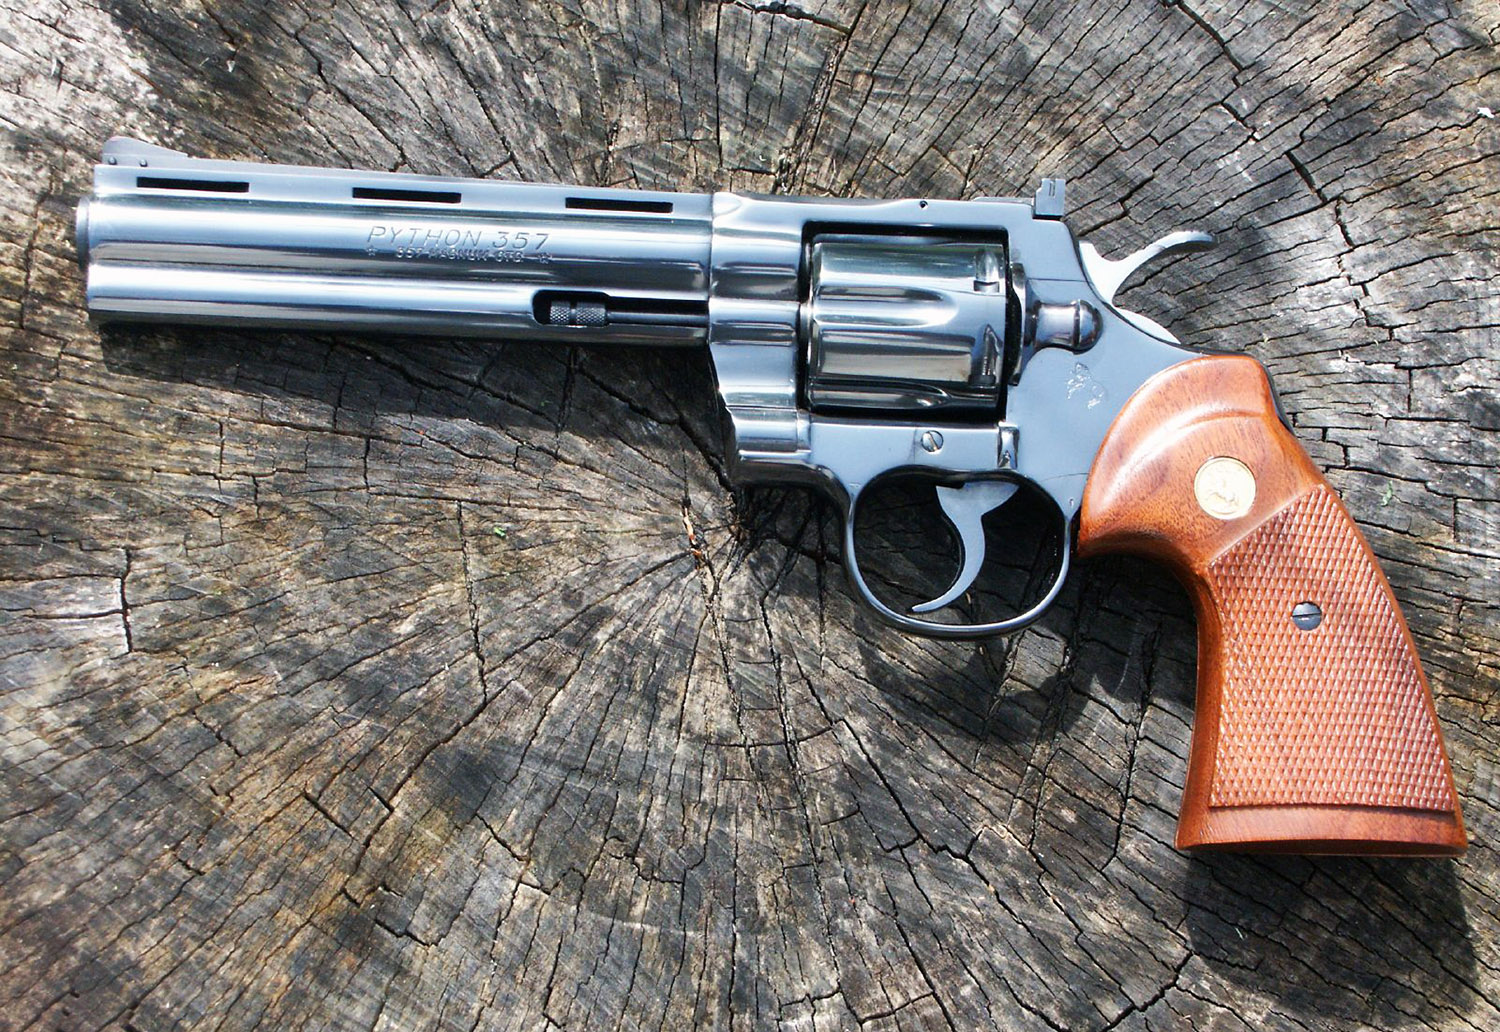 Could The Colt Python Be The Best Revolver On The Planet